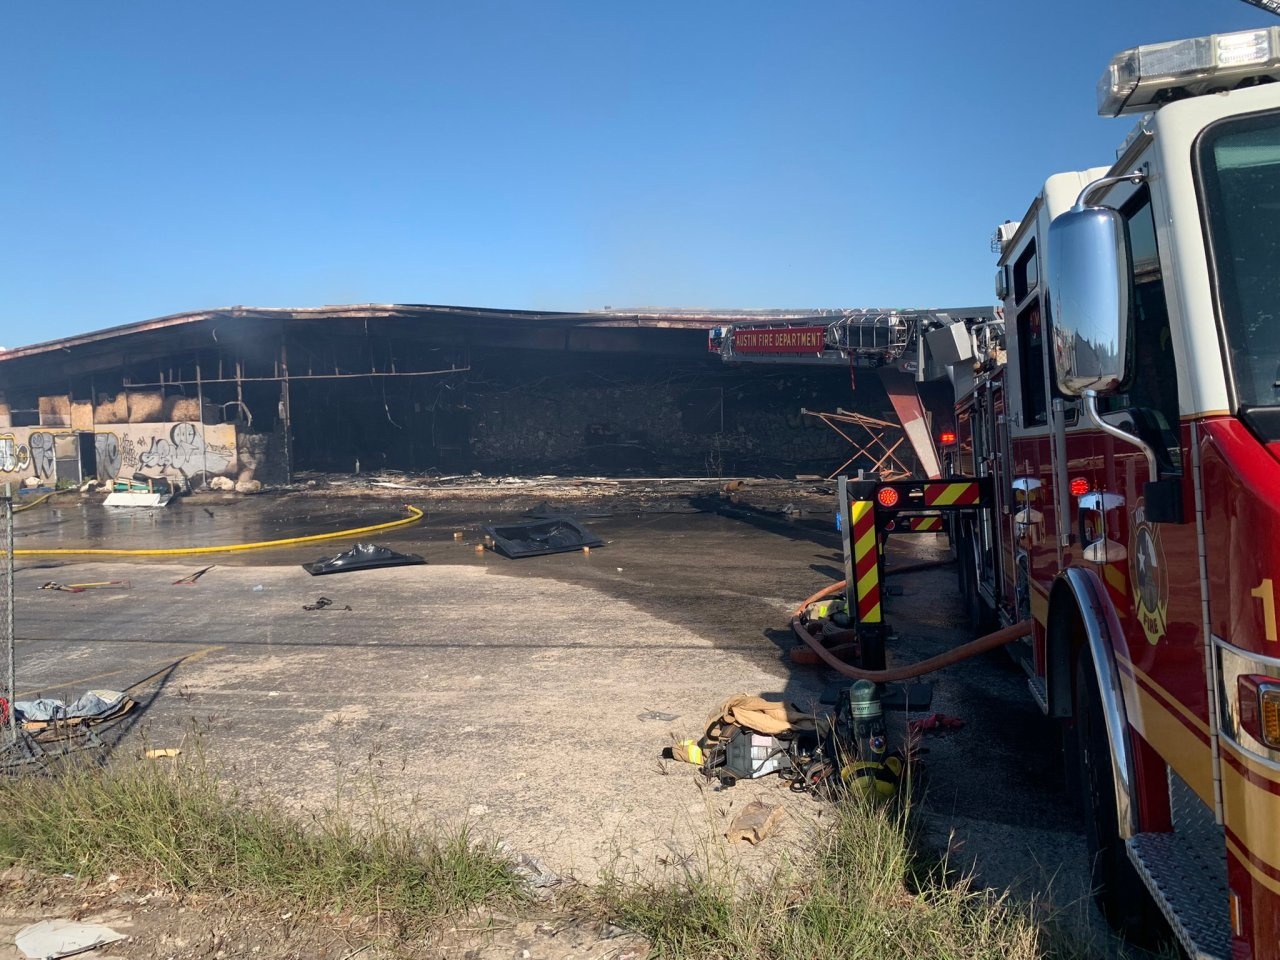 115 Austin firefighters potentially exposed to asbestos at warehouse blaze